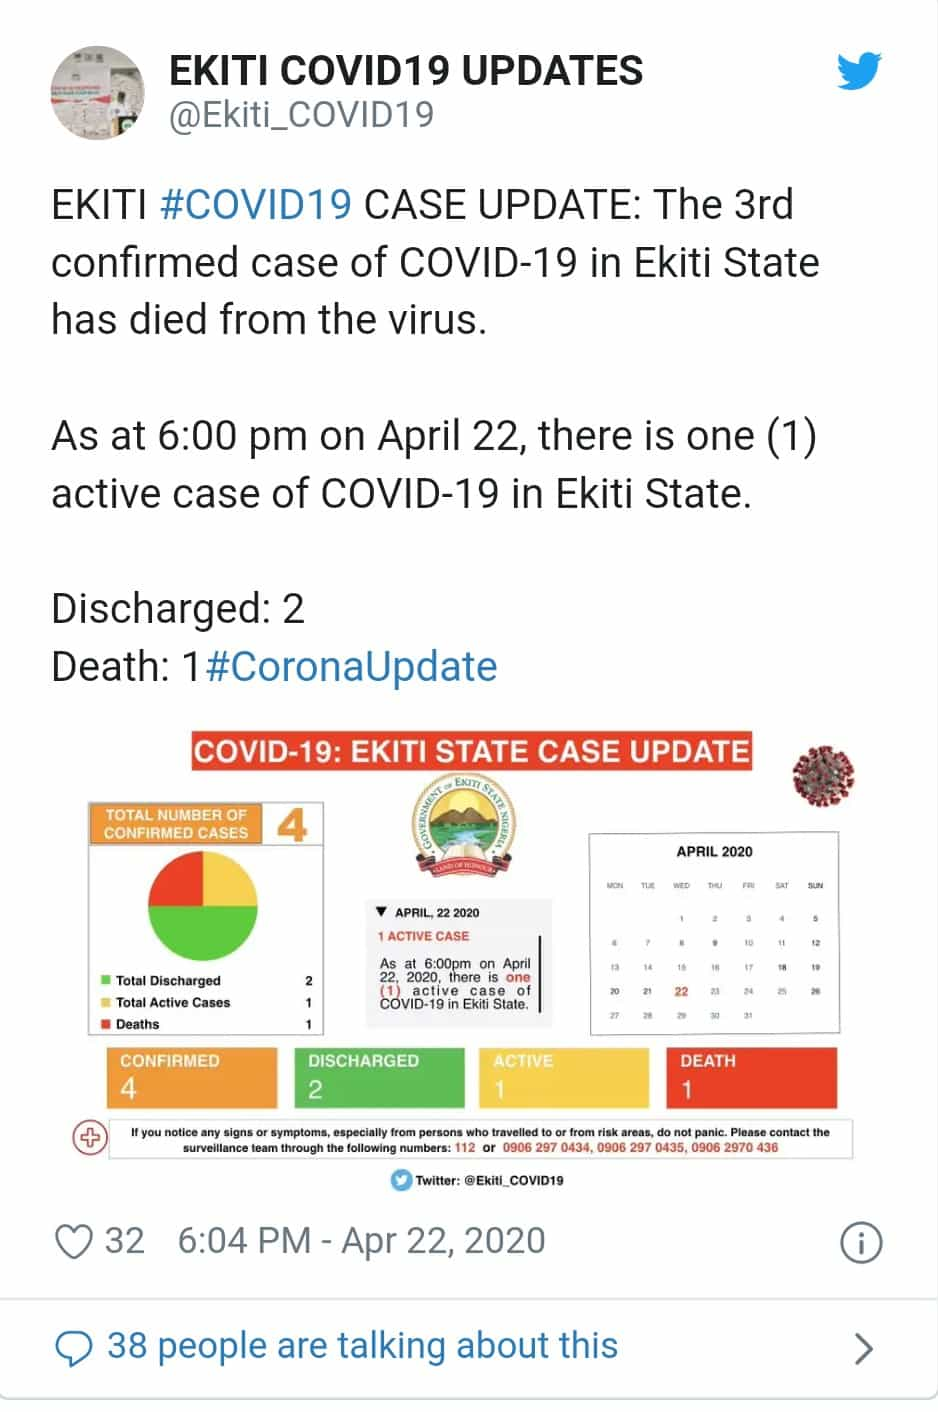 Pregnant 29 Years Old Health Worker Died of COVID-19 in Ekiti State